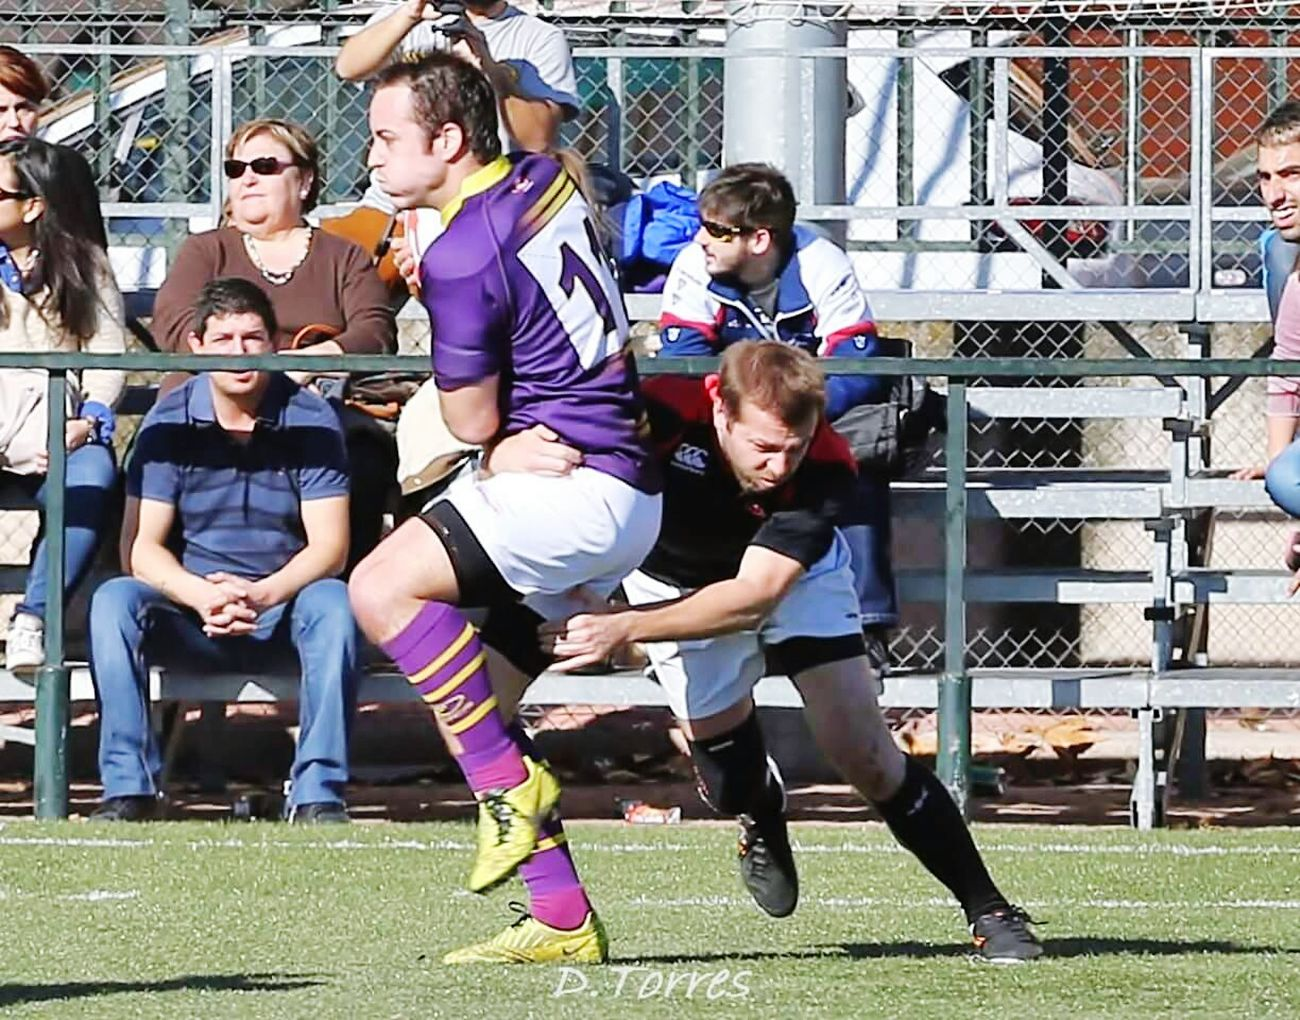 Rugby Rugbyalcala Alcalarugby Rugby TIME Alcala De Henares